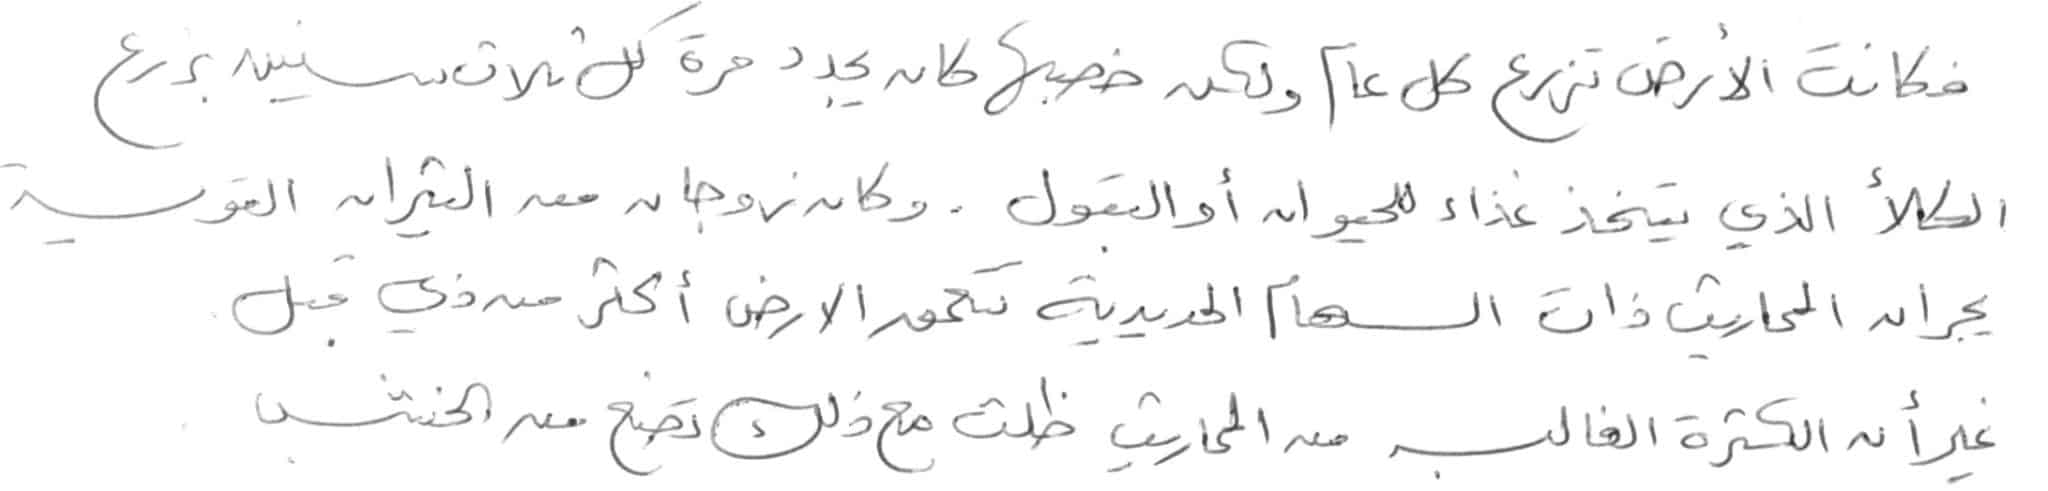 arabic-handwriting-07